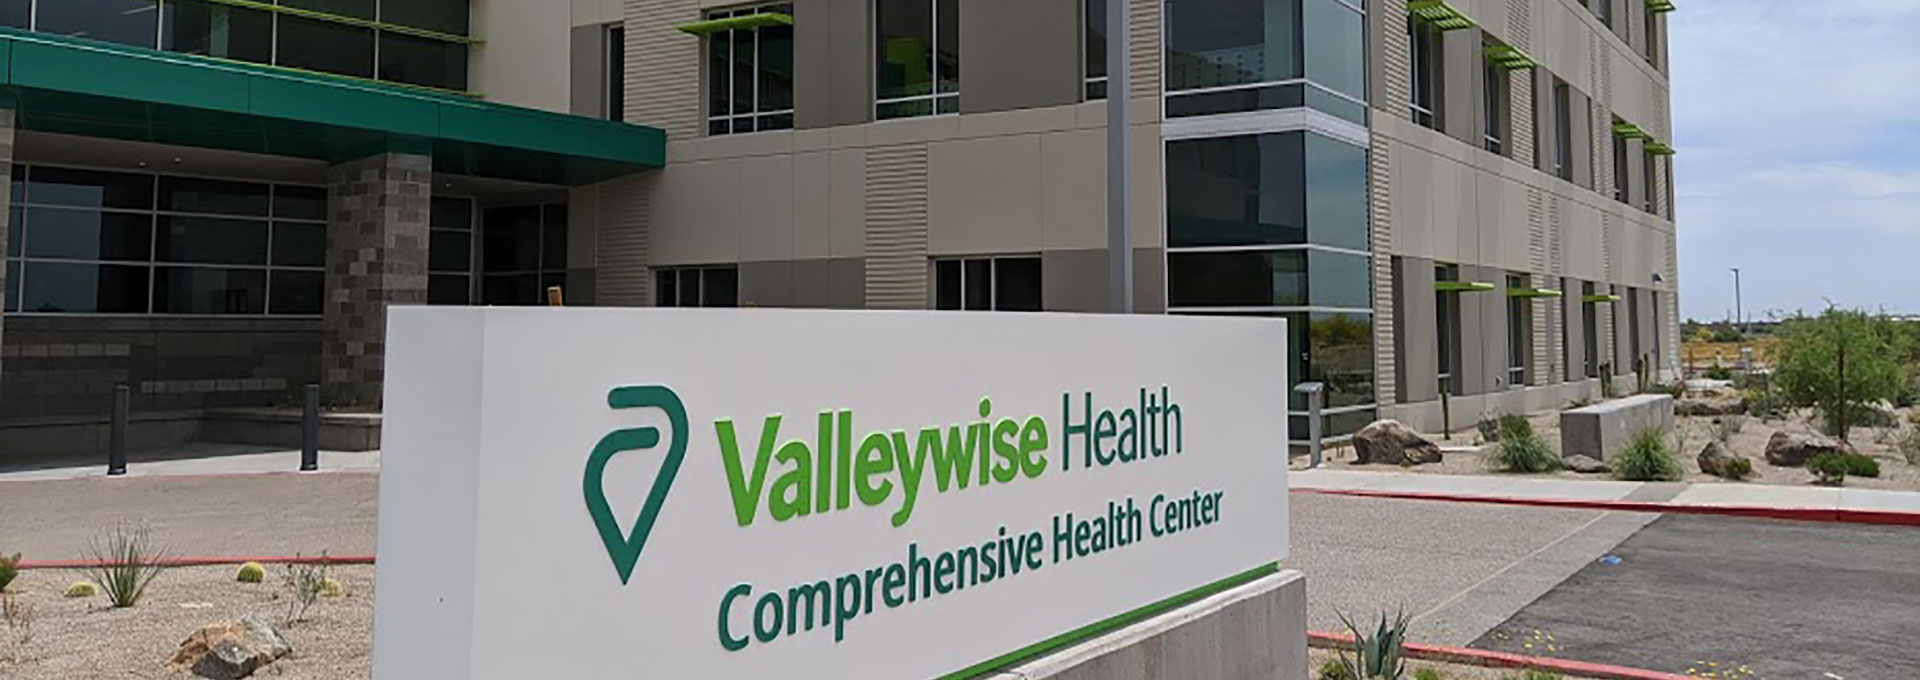 Valleywise Health Peoria AZ